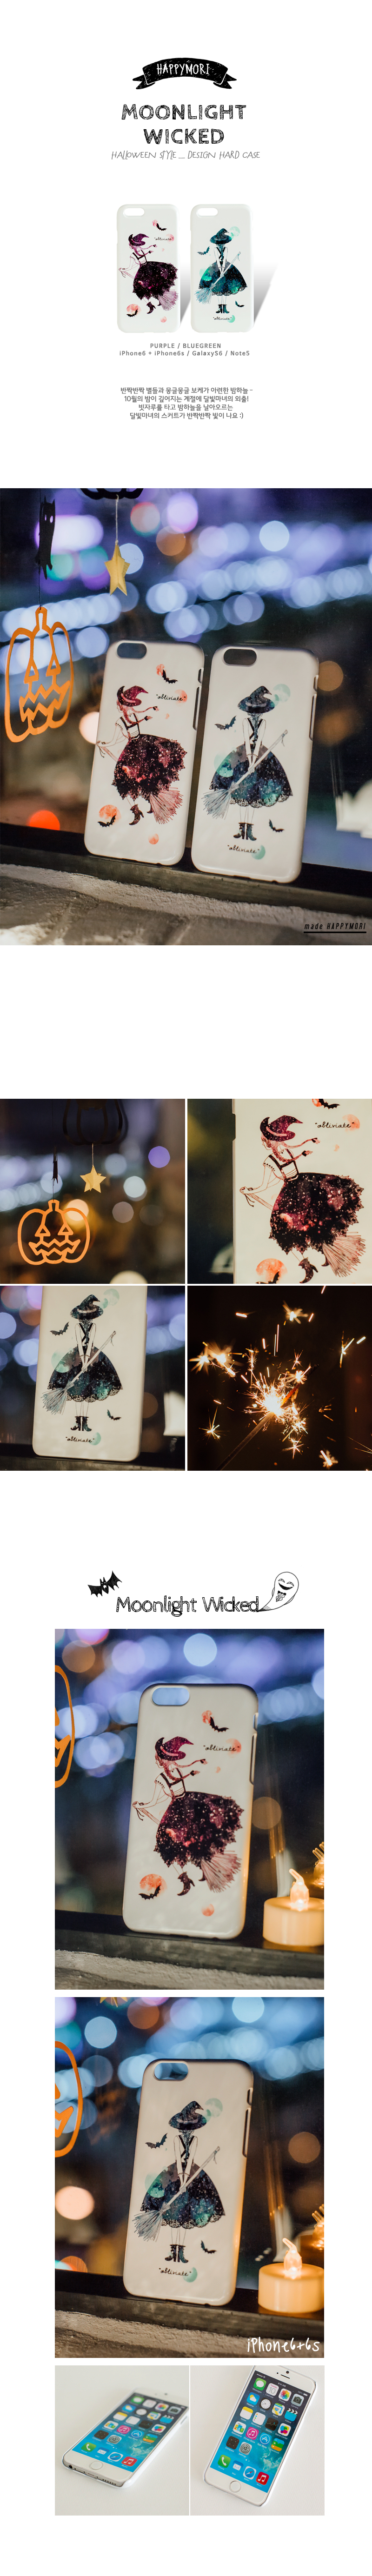 [HAPPYMORI]Hard Case_Moonlight Wicked (iPhone6Plus,iPhone6Plus_s,Galaxy S6Edge+,Galaxy Note5)